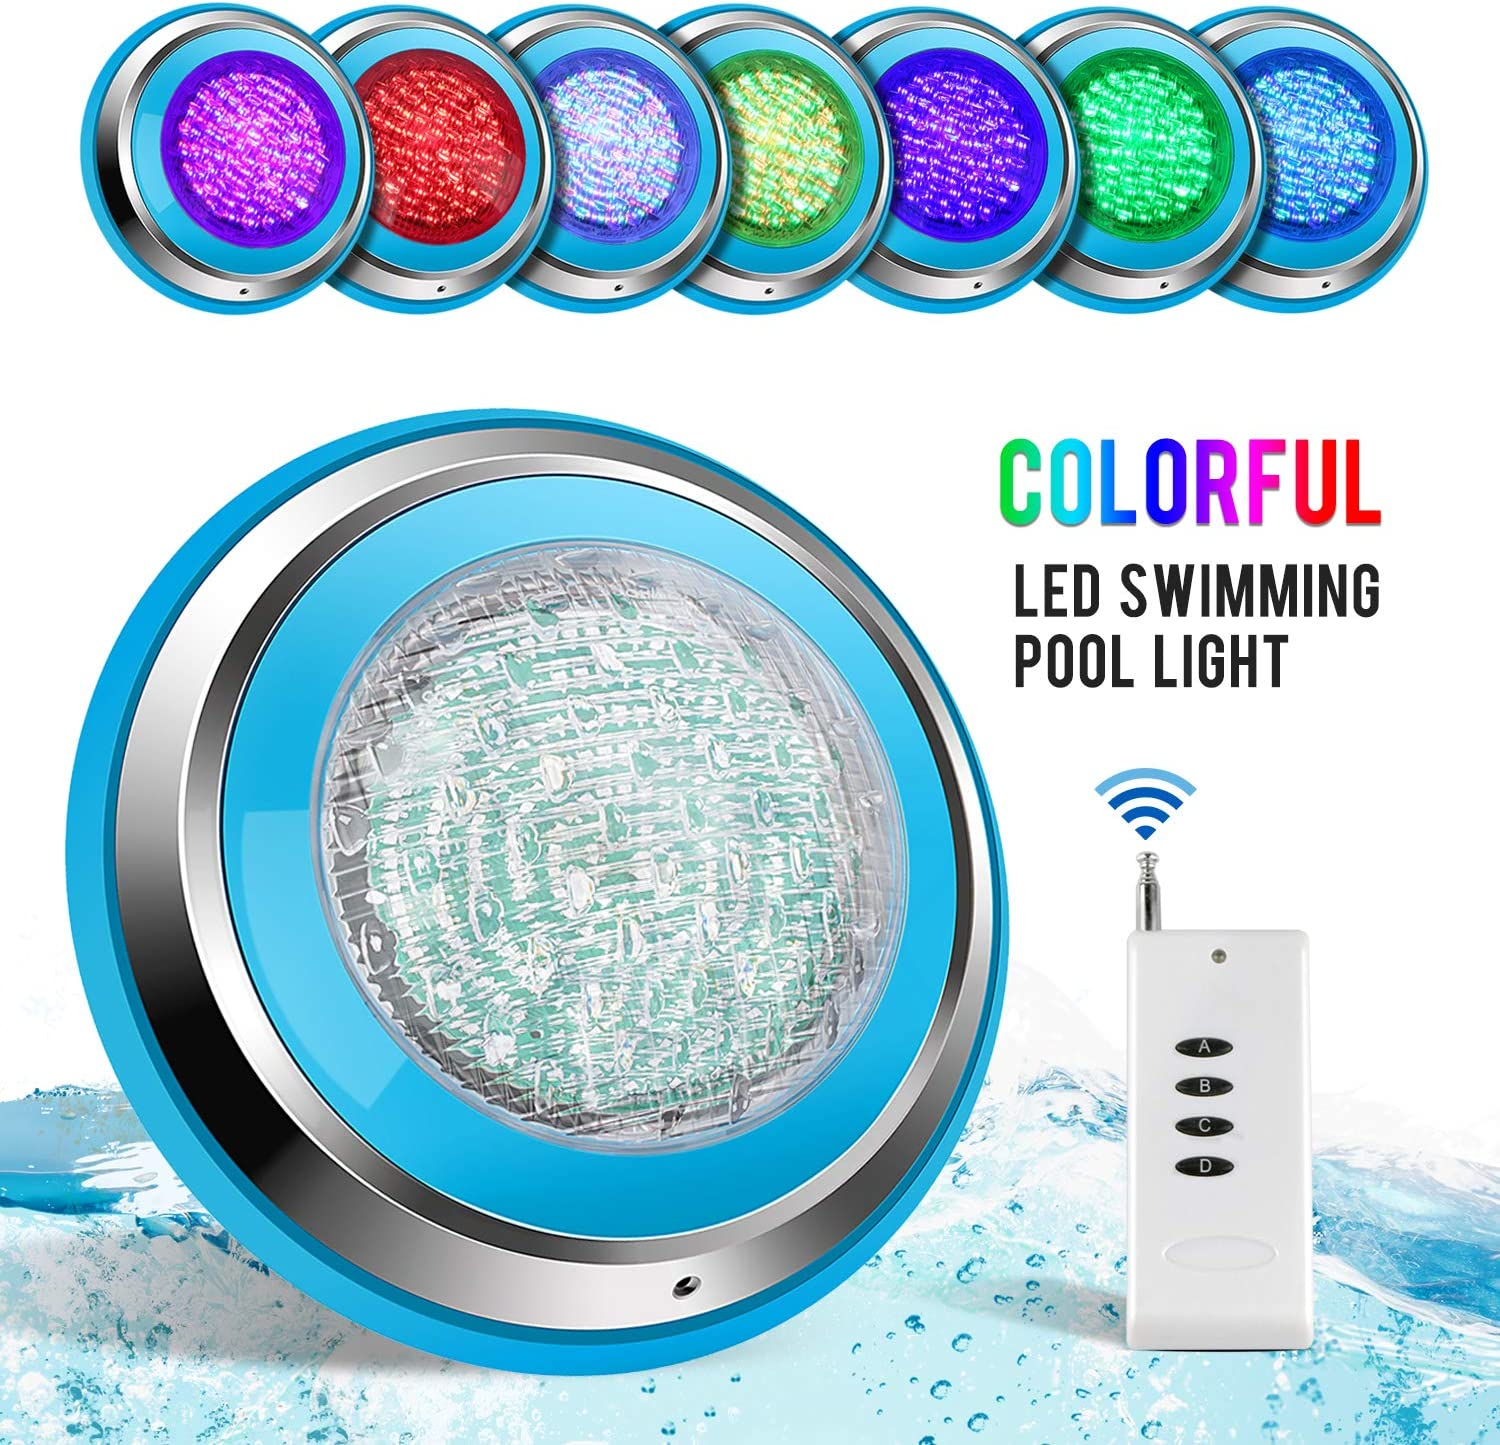 TOPLANET Led Piscina 48W RGB Luz de Piscina Iluminacion Led para Piscinas Impermeable IP68 Piscina Led Pool Light Control Remoto para Swimming Pool/Acuario Light Decoración Wall Mounted